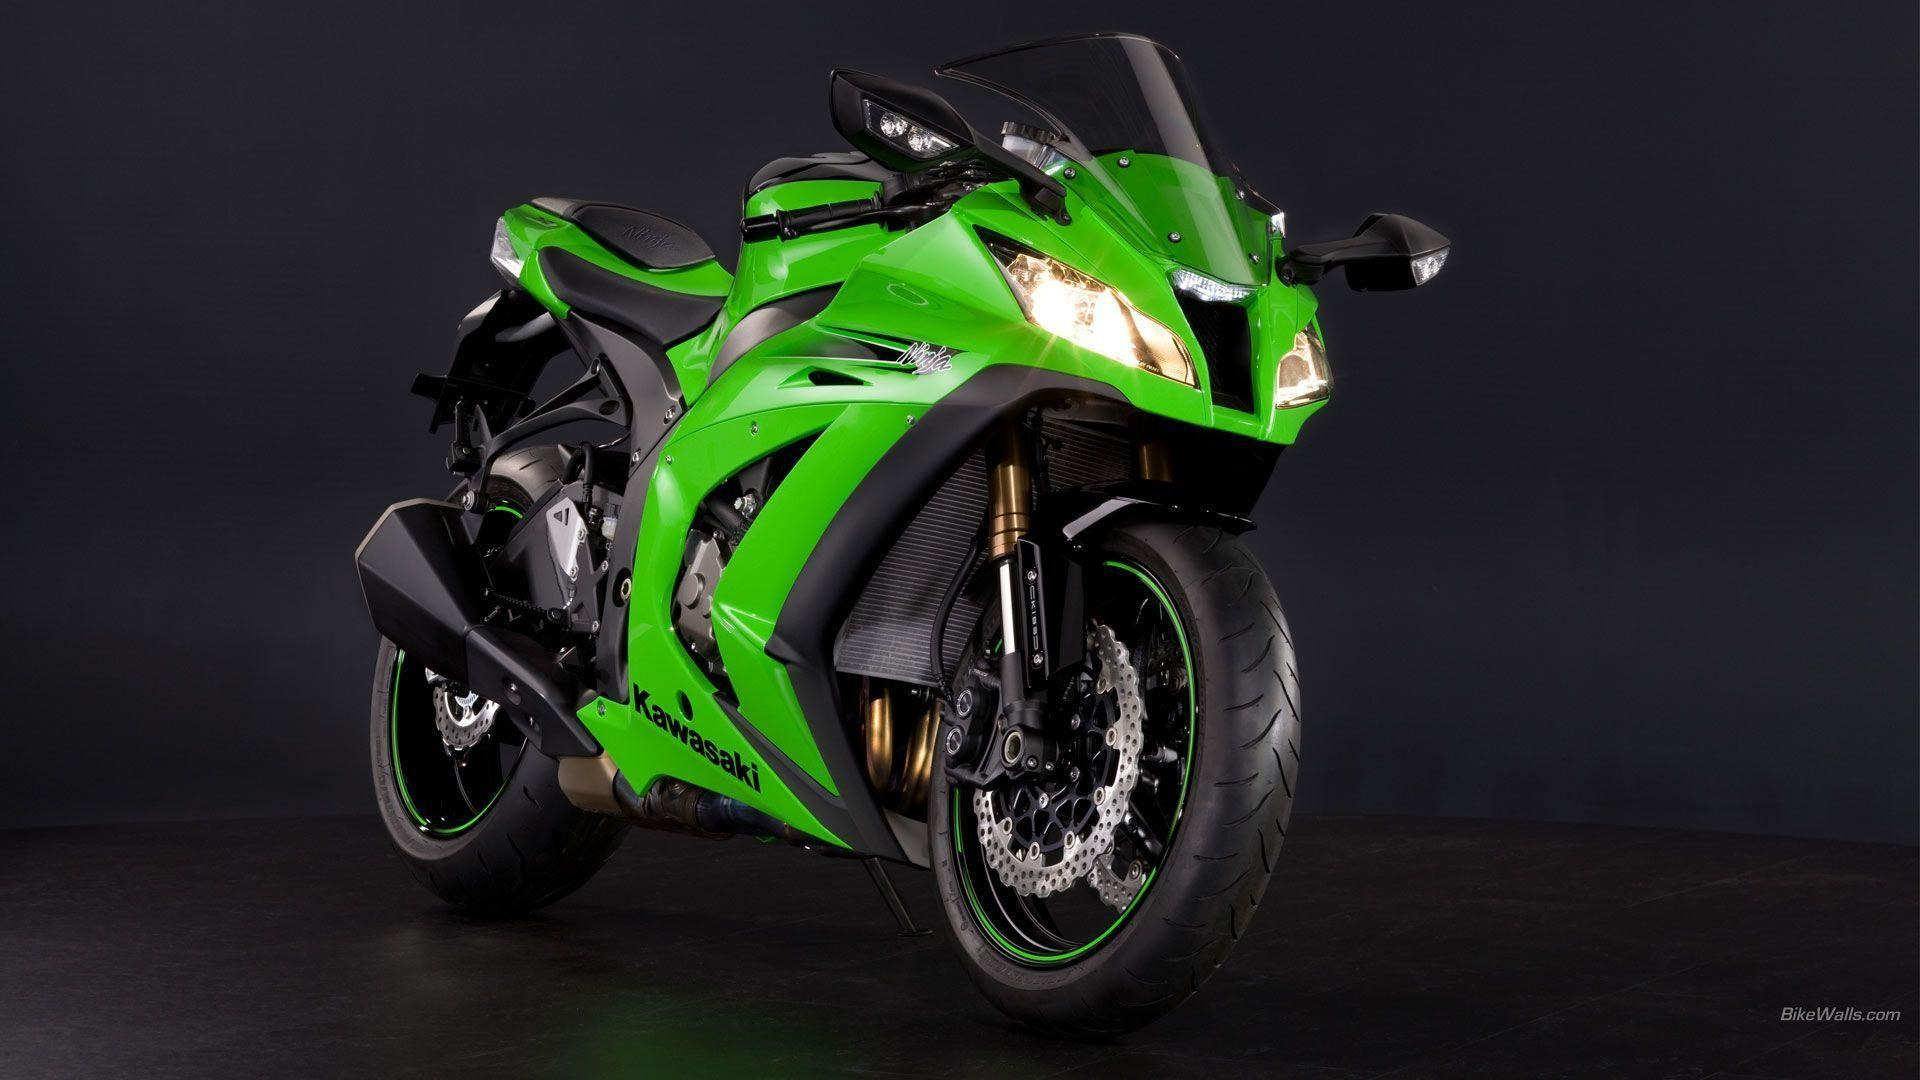 Kawasaki Ninja Wallpaper 1920x1080